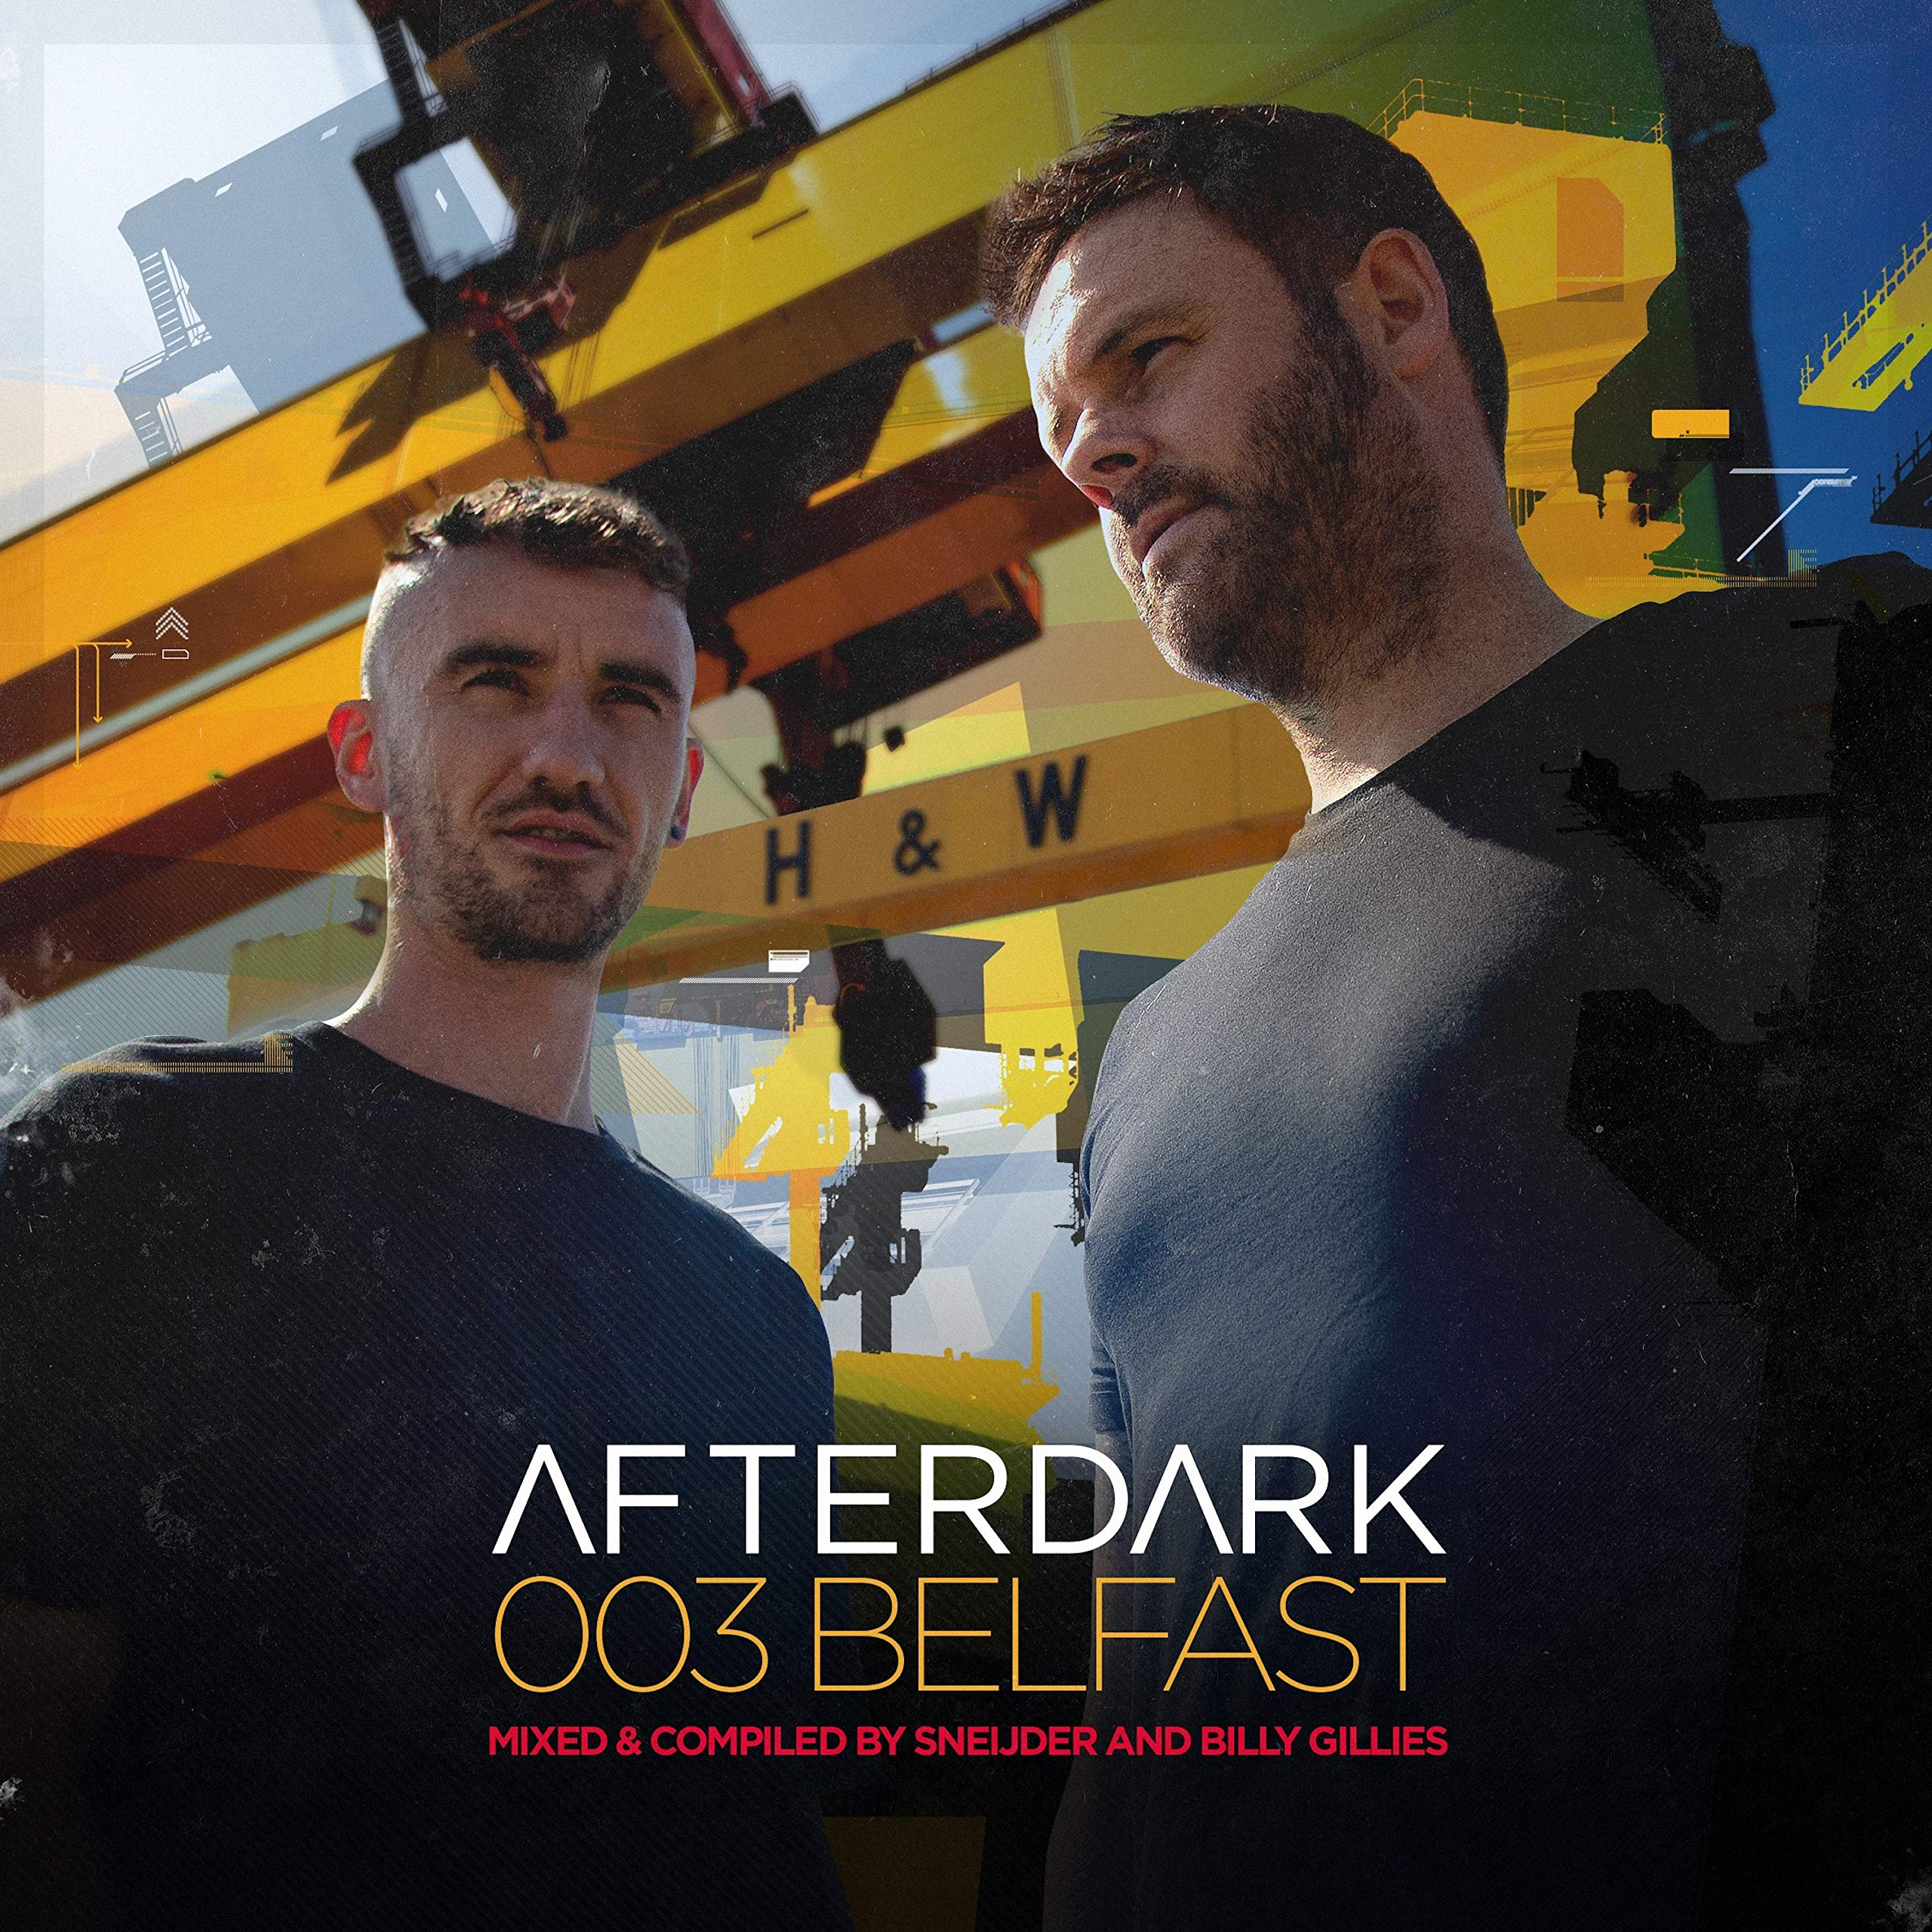 VA – Afterdark 003 Belfast Mixed & Compiled by Sneijder & Billy Gillies (2020) [FLAC]